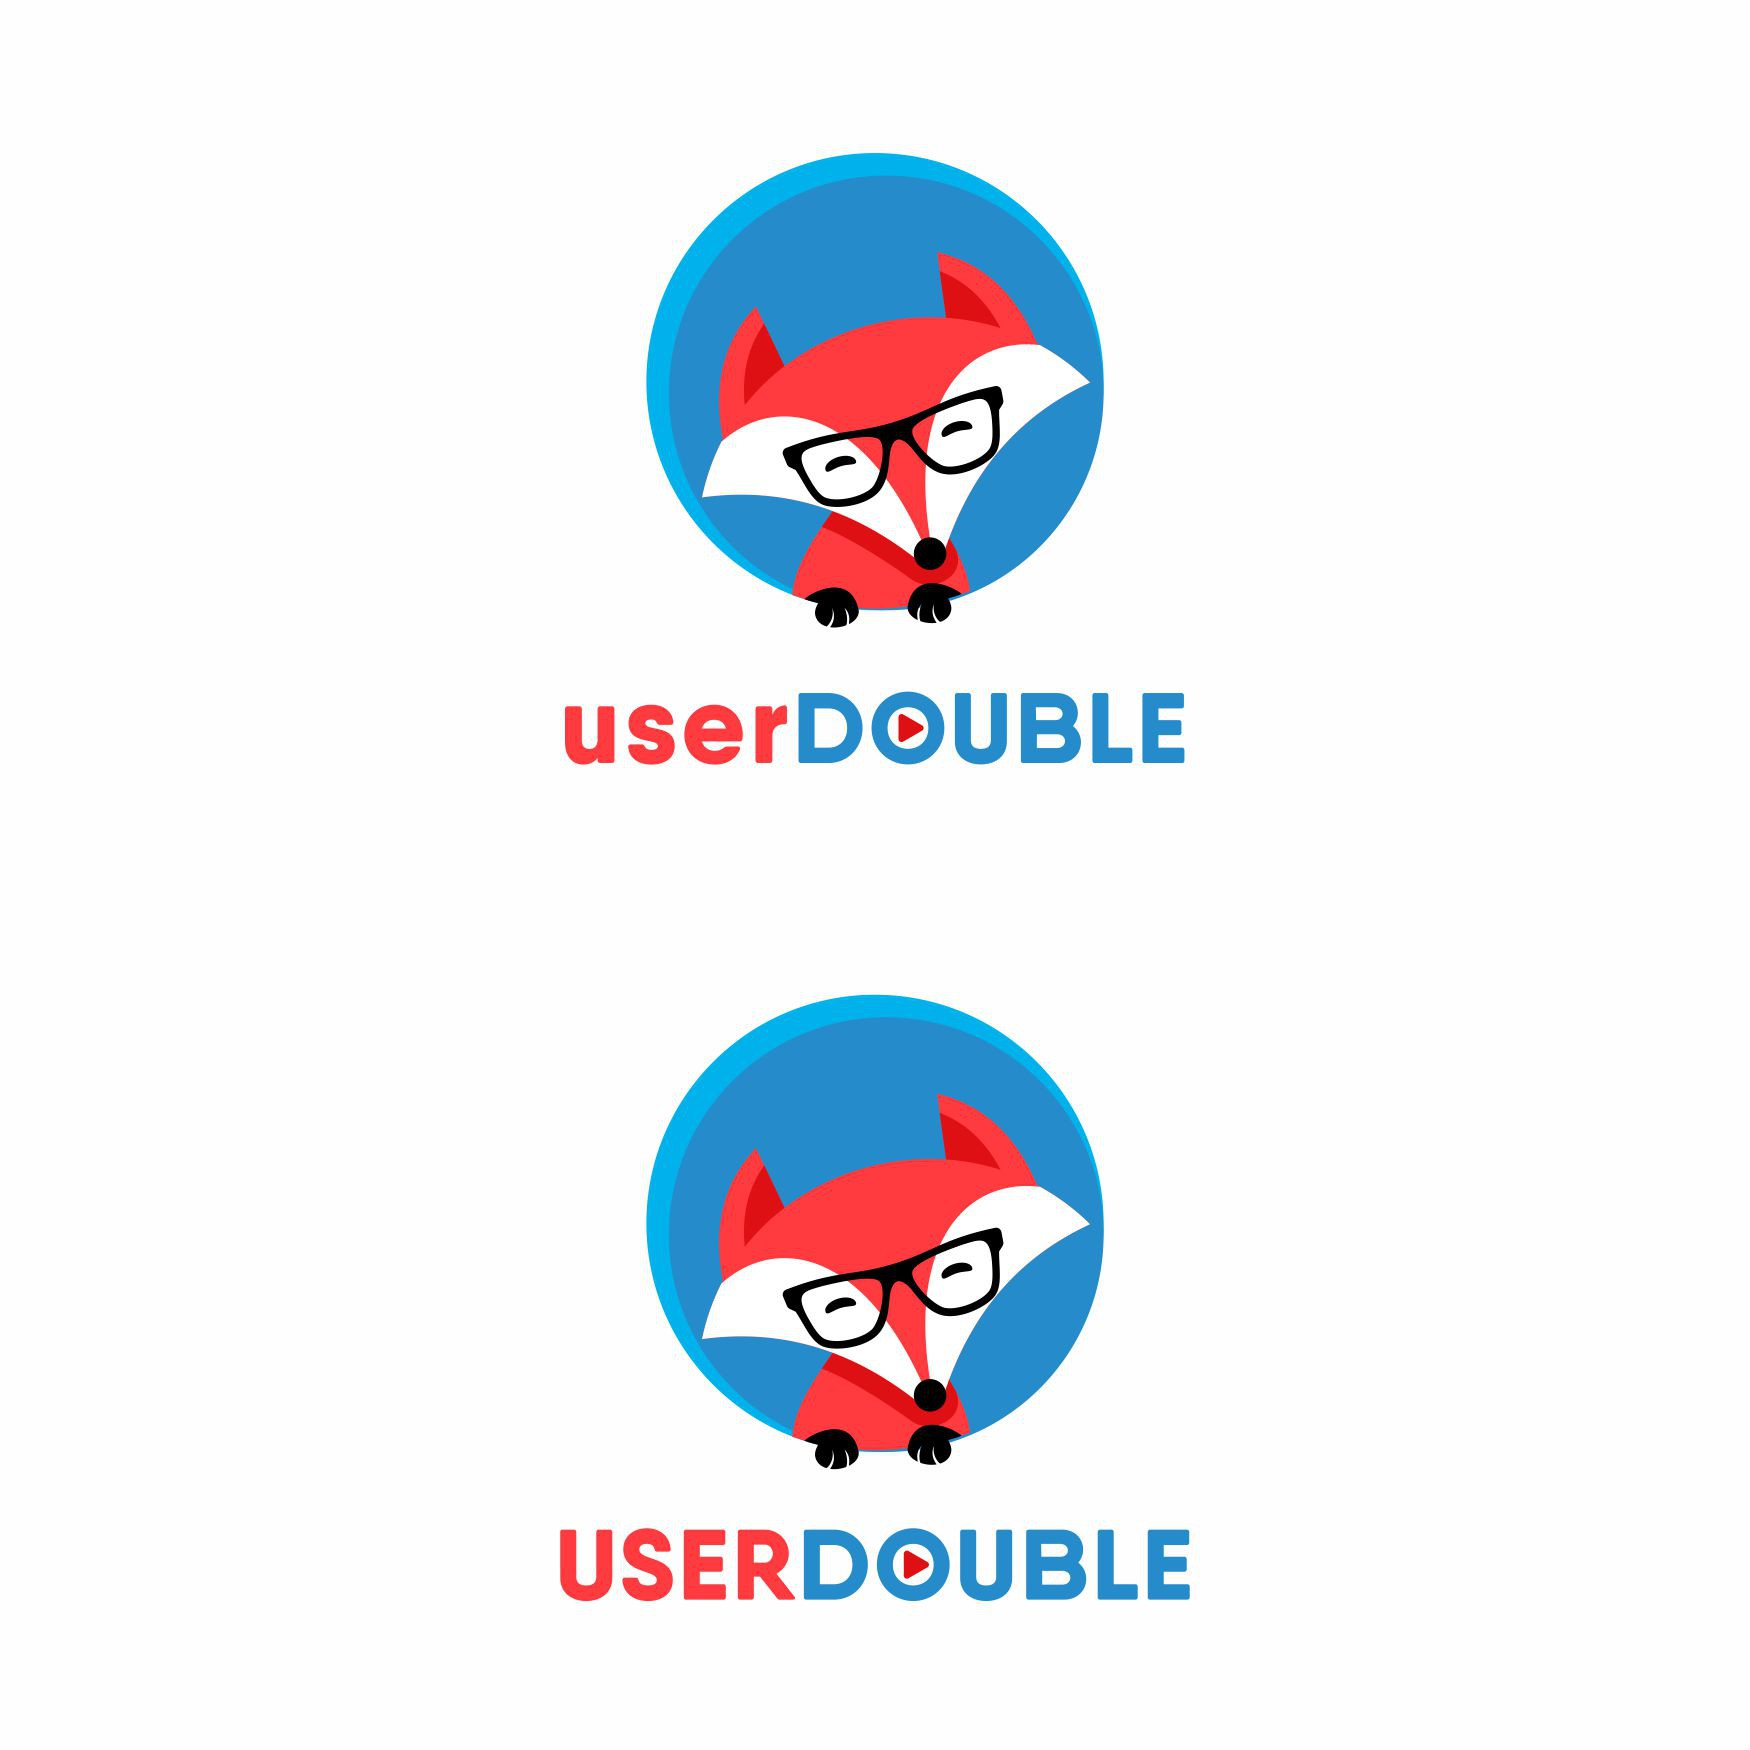 userDouble needs a fun, clean logo for its website